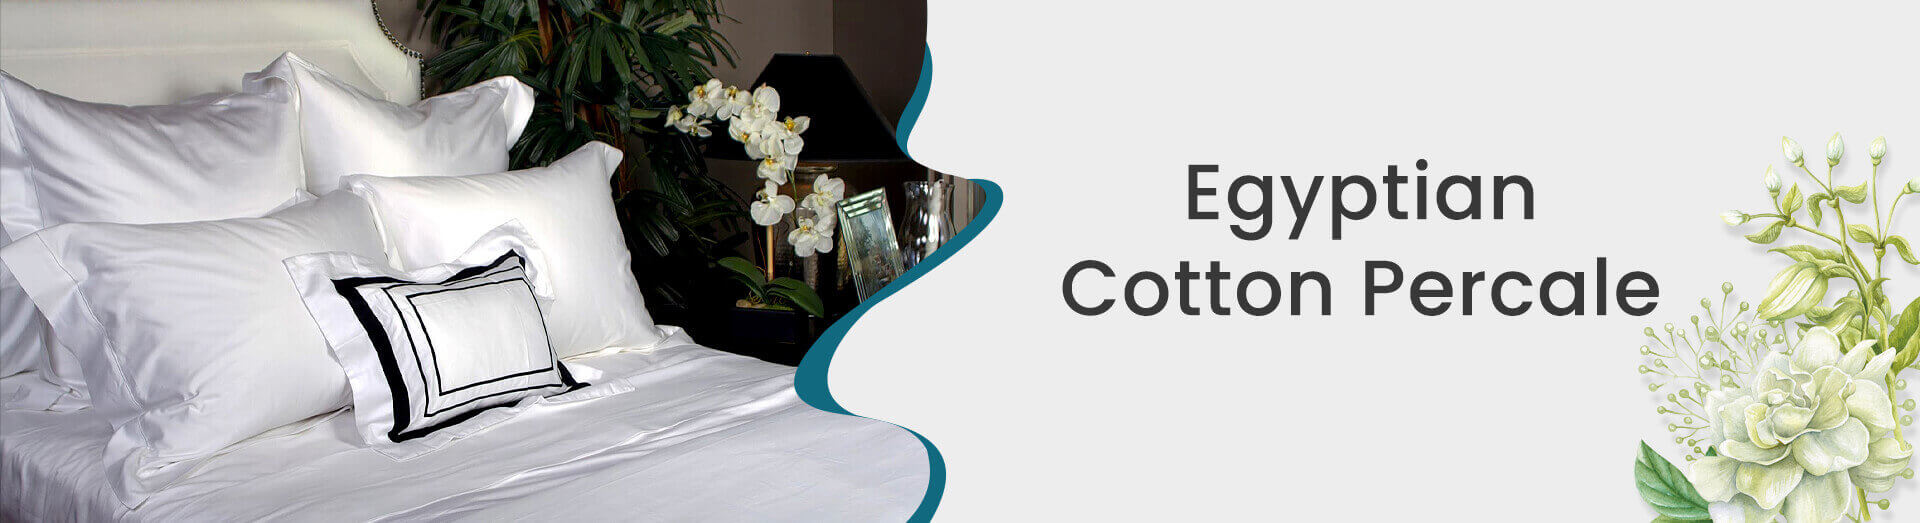 Egyptian Cotton Percale